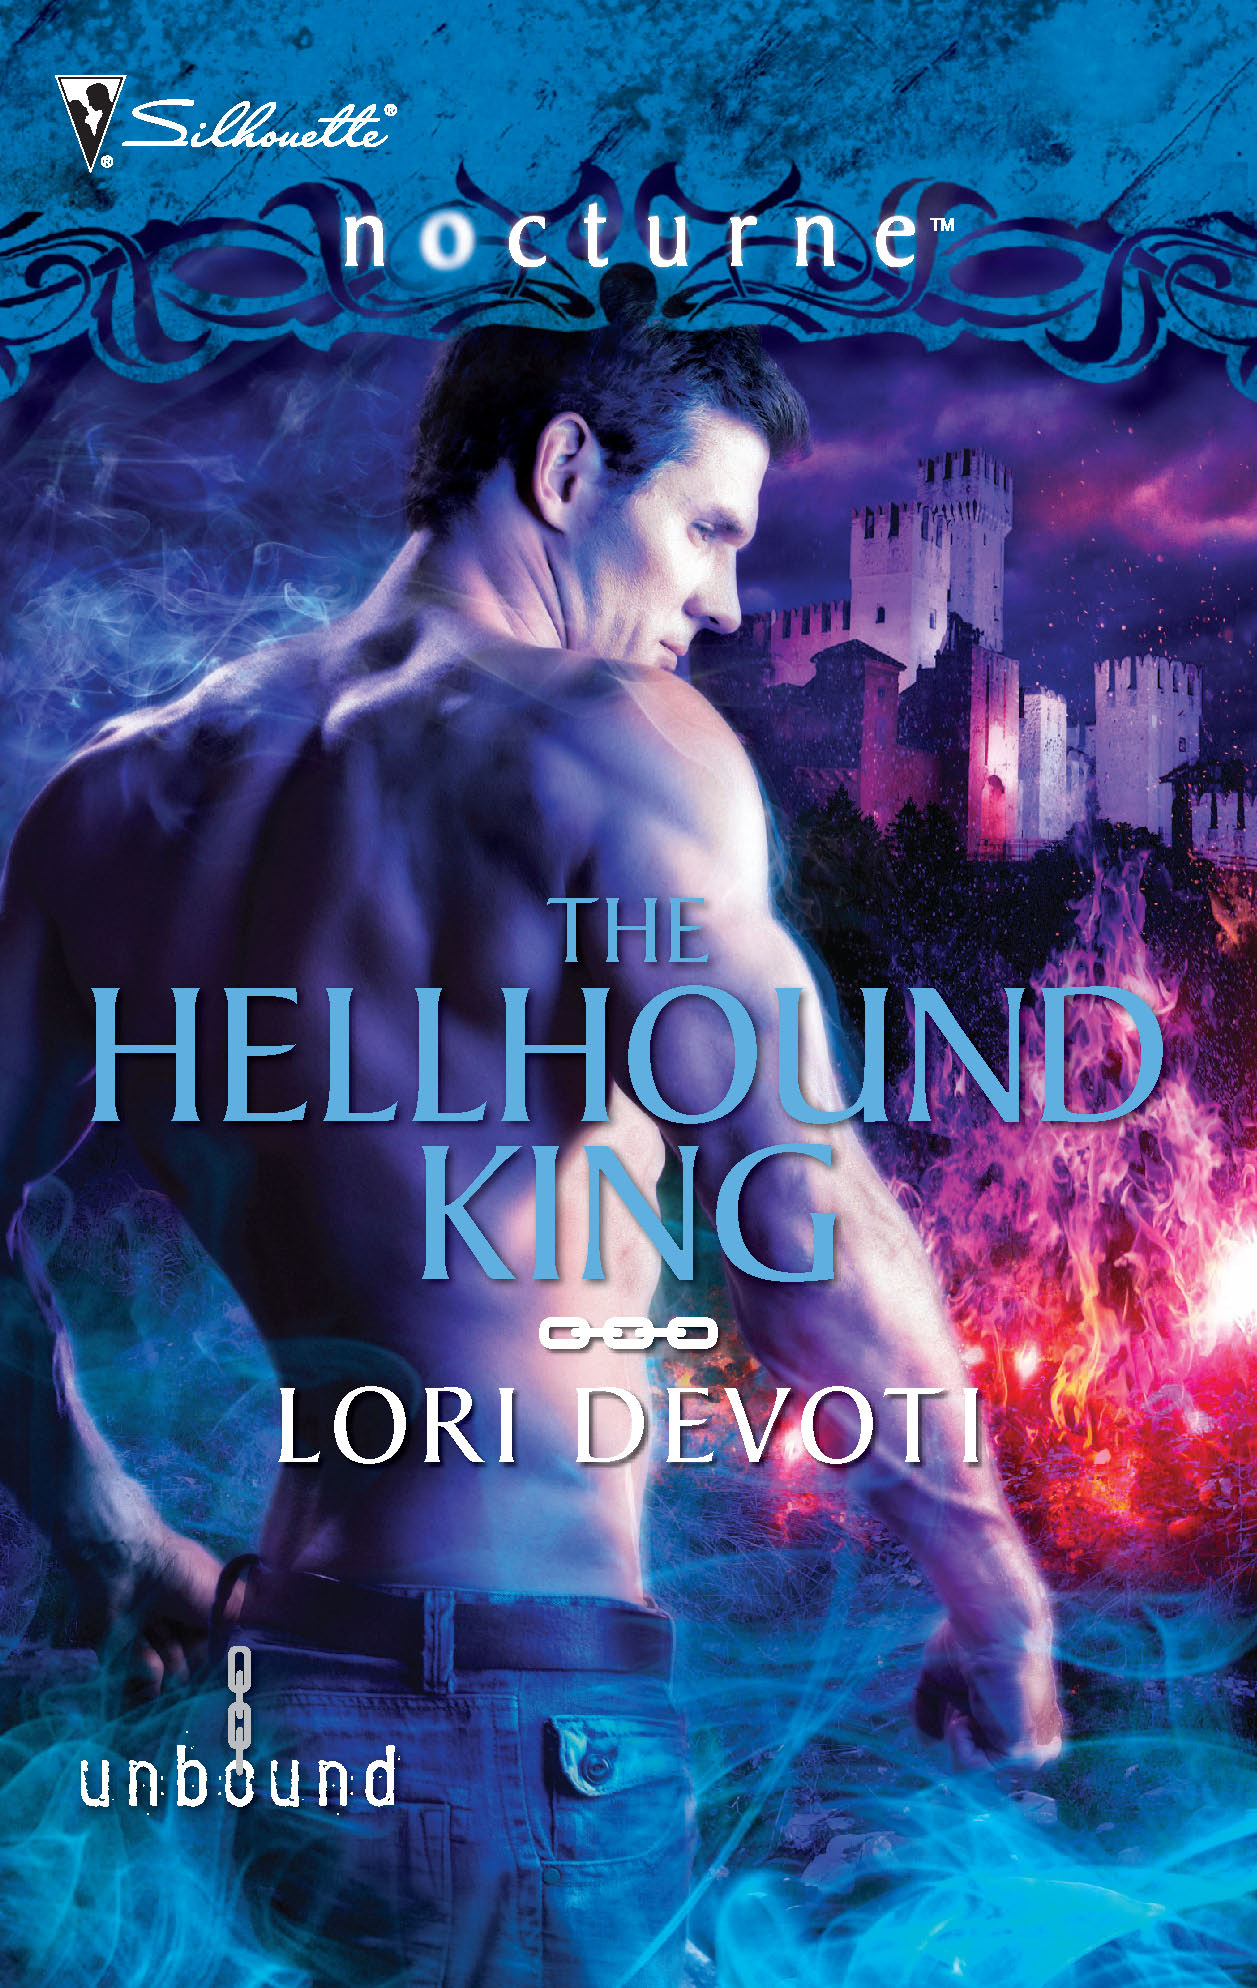 The Hellhound King, paranormal romance novel